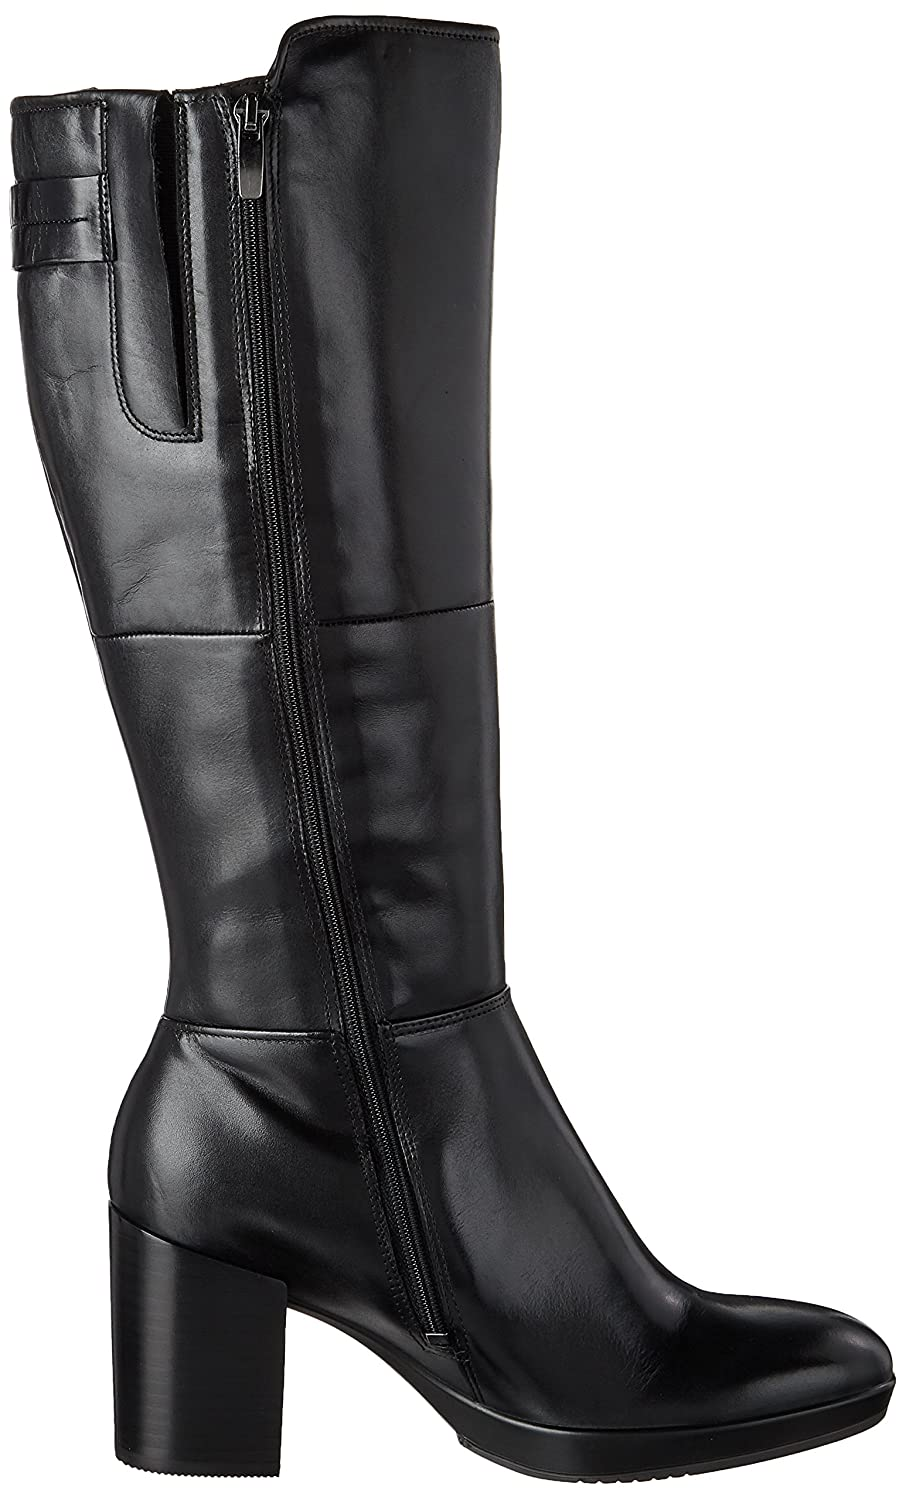 ECCO Women's Riding Shape 55 Chalet Tall Riding Women's Boot B01NH9NKNW 41 EU / 10-10.5 US|Black d89612